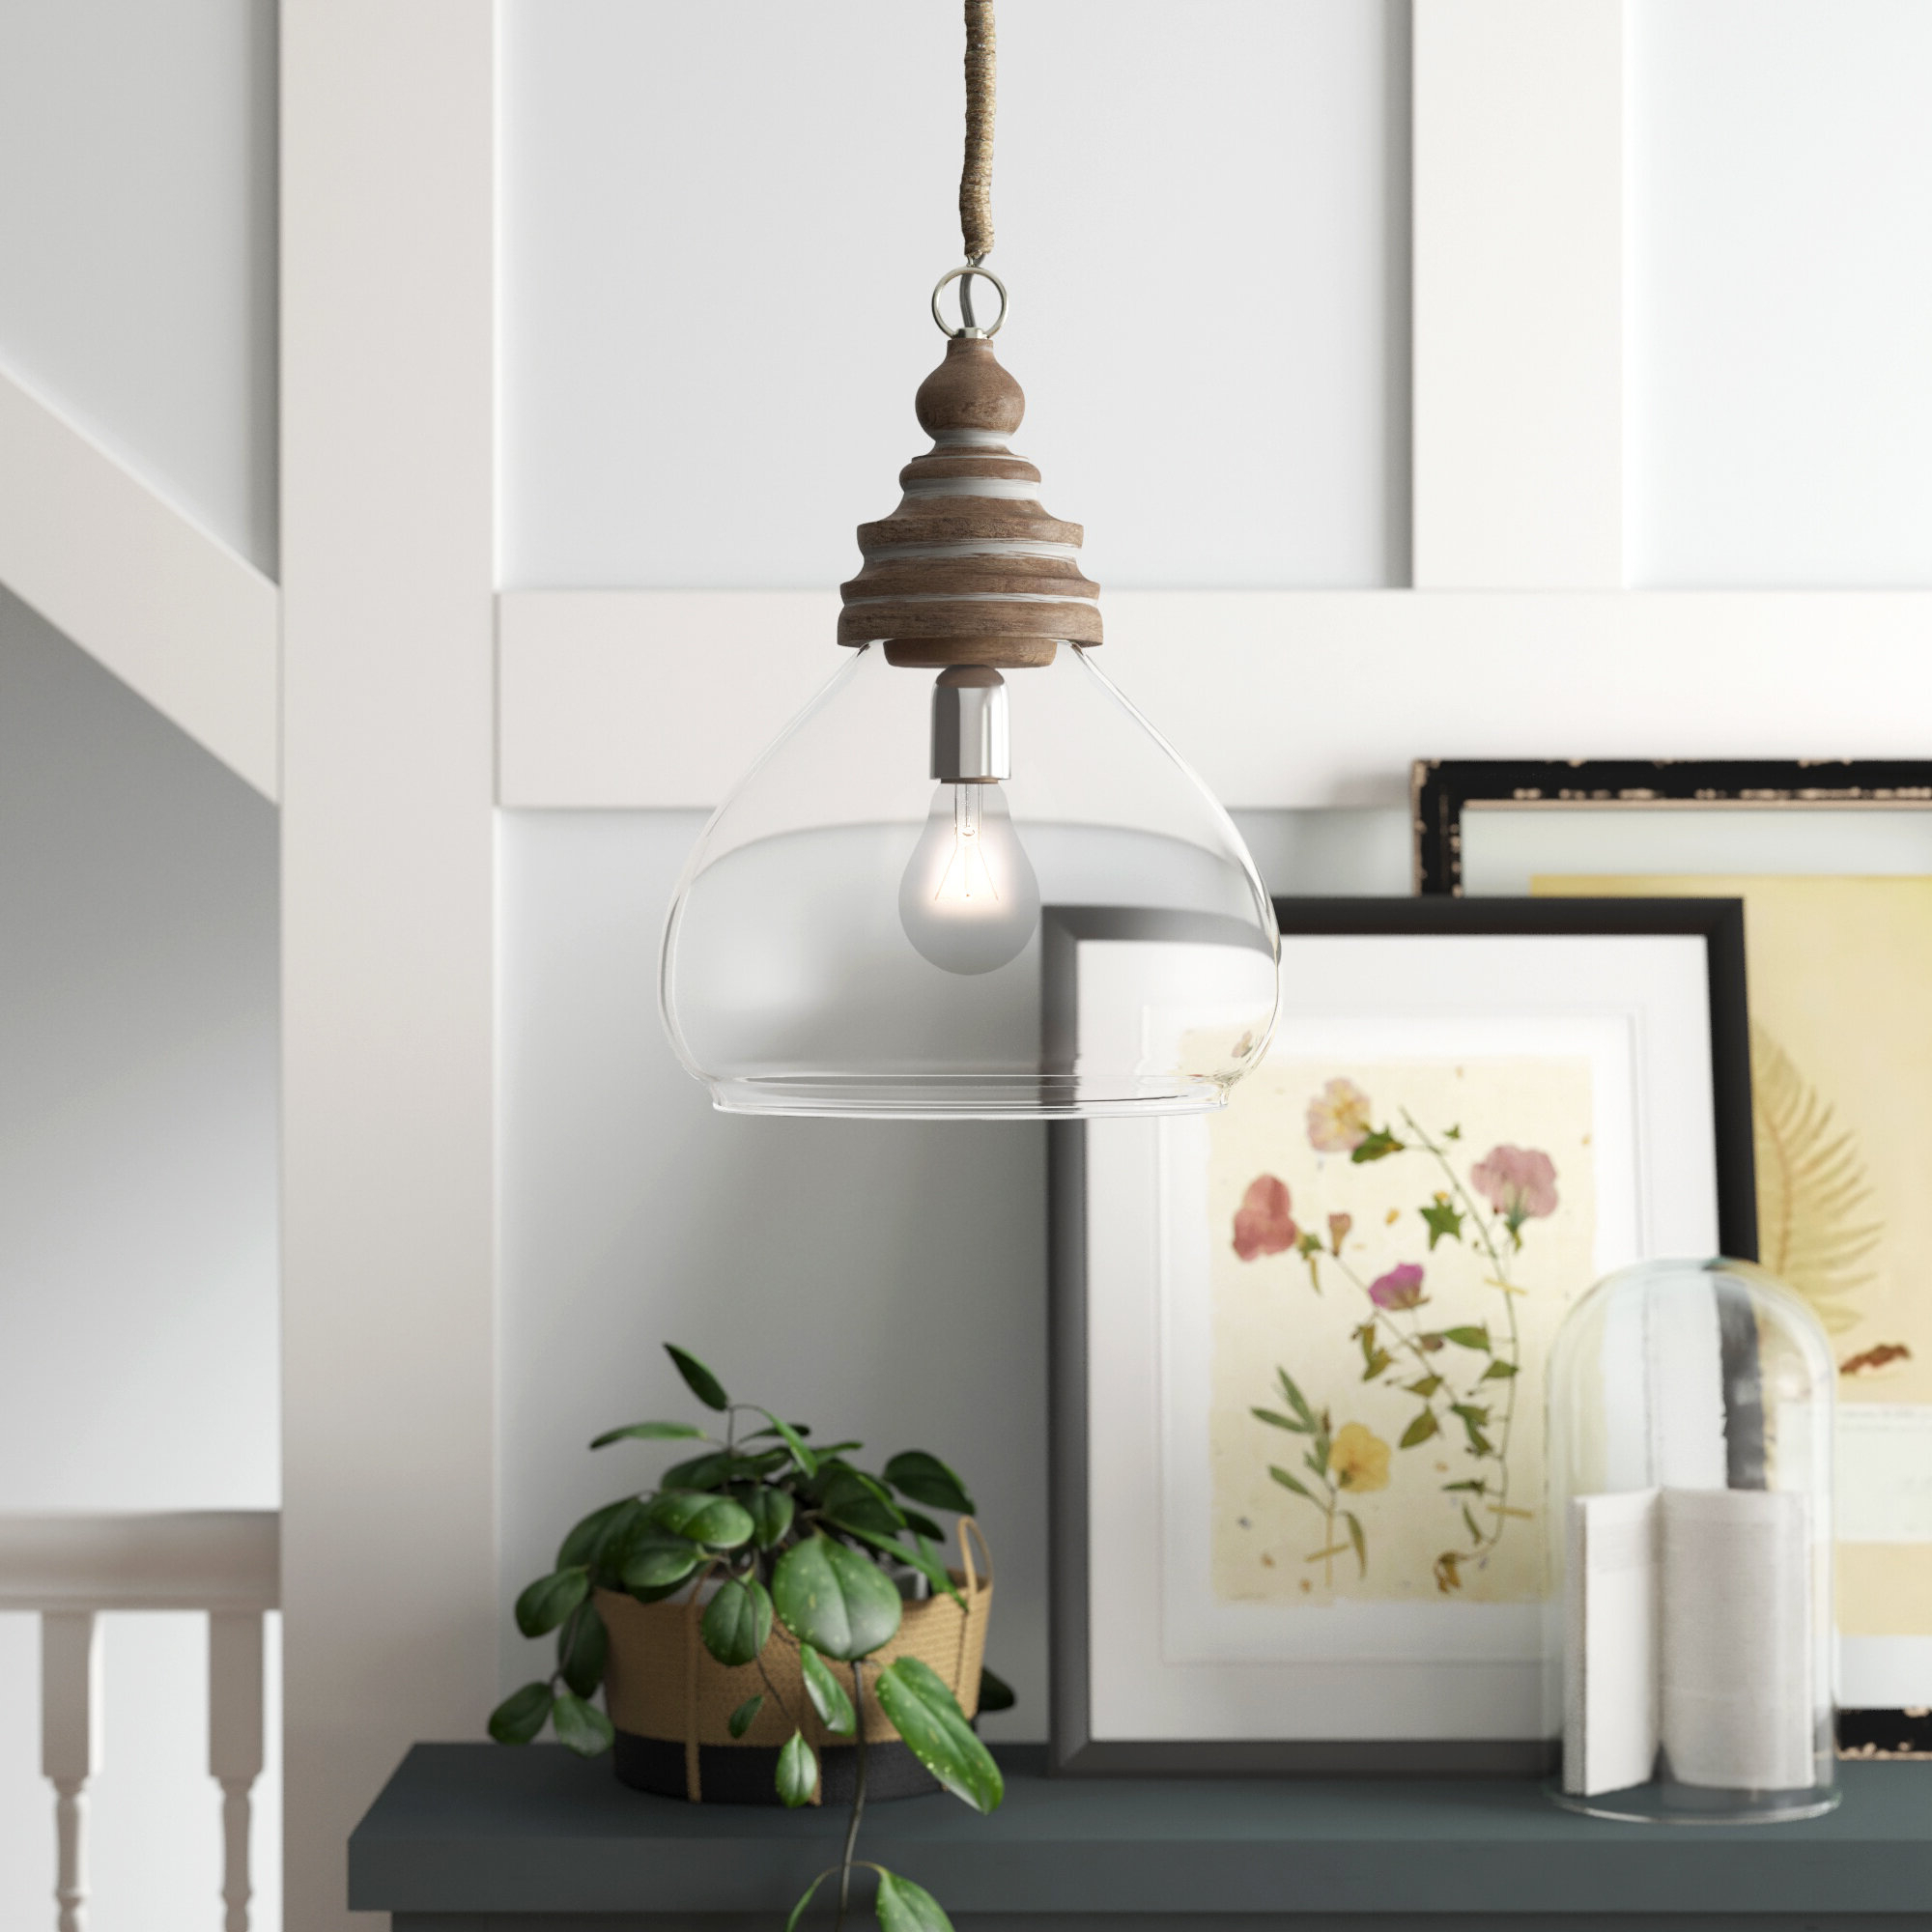 Most Recently Released Adriana Black 1 Light Single Dome Pendants With Regard To Brisa 1 Light Single Dome Pendant (View 16 of 20)